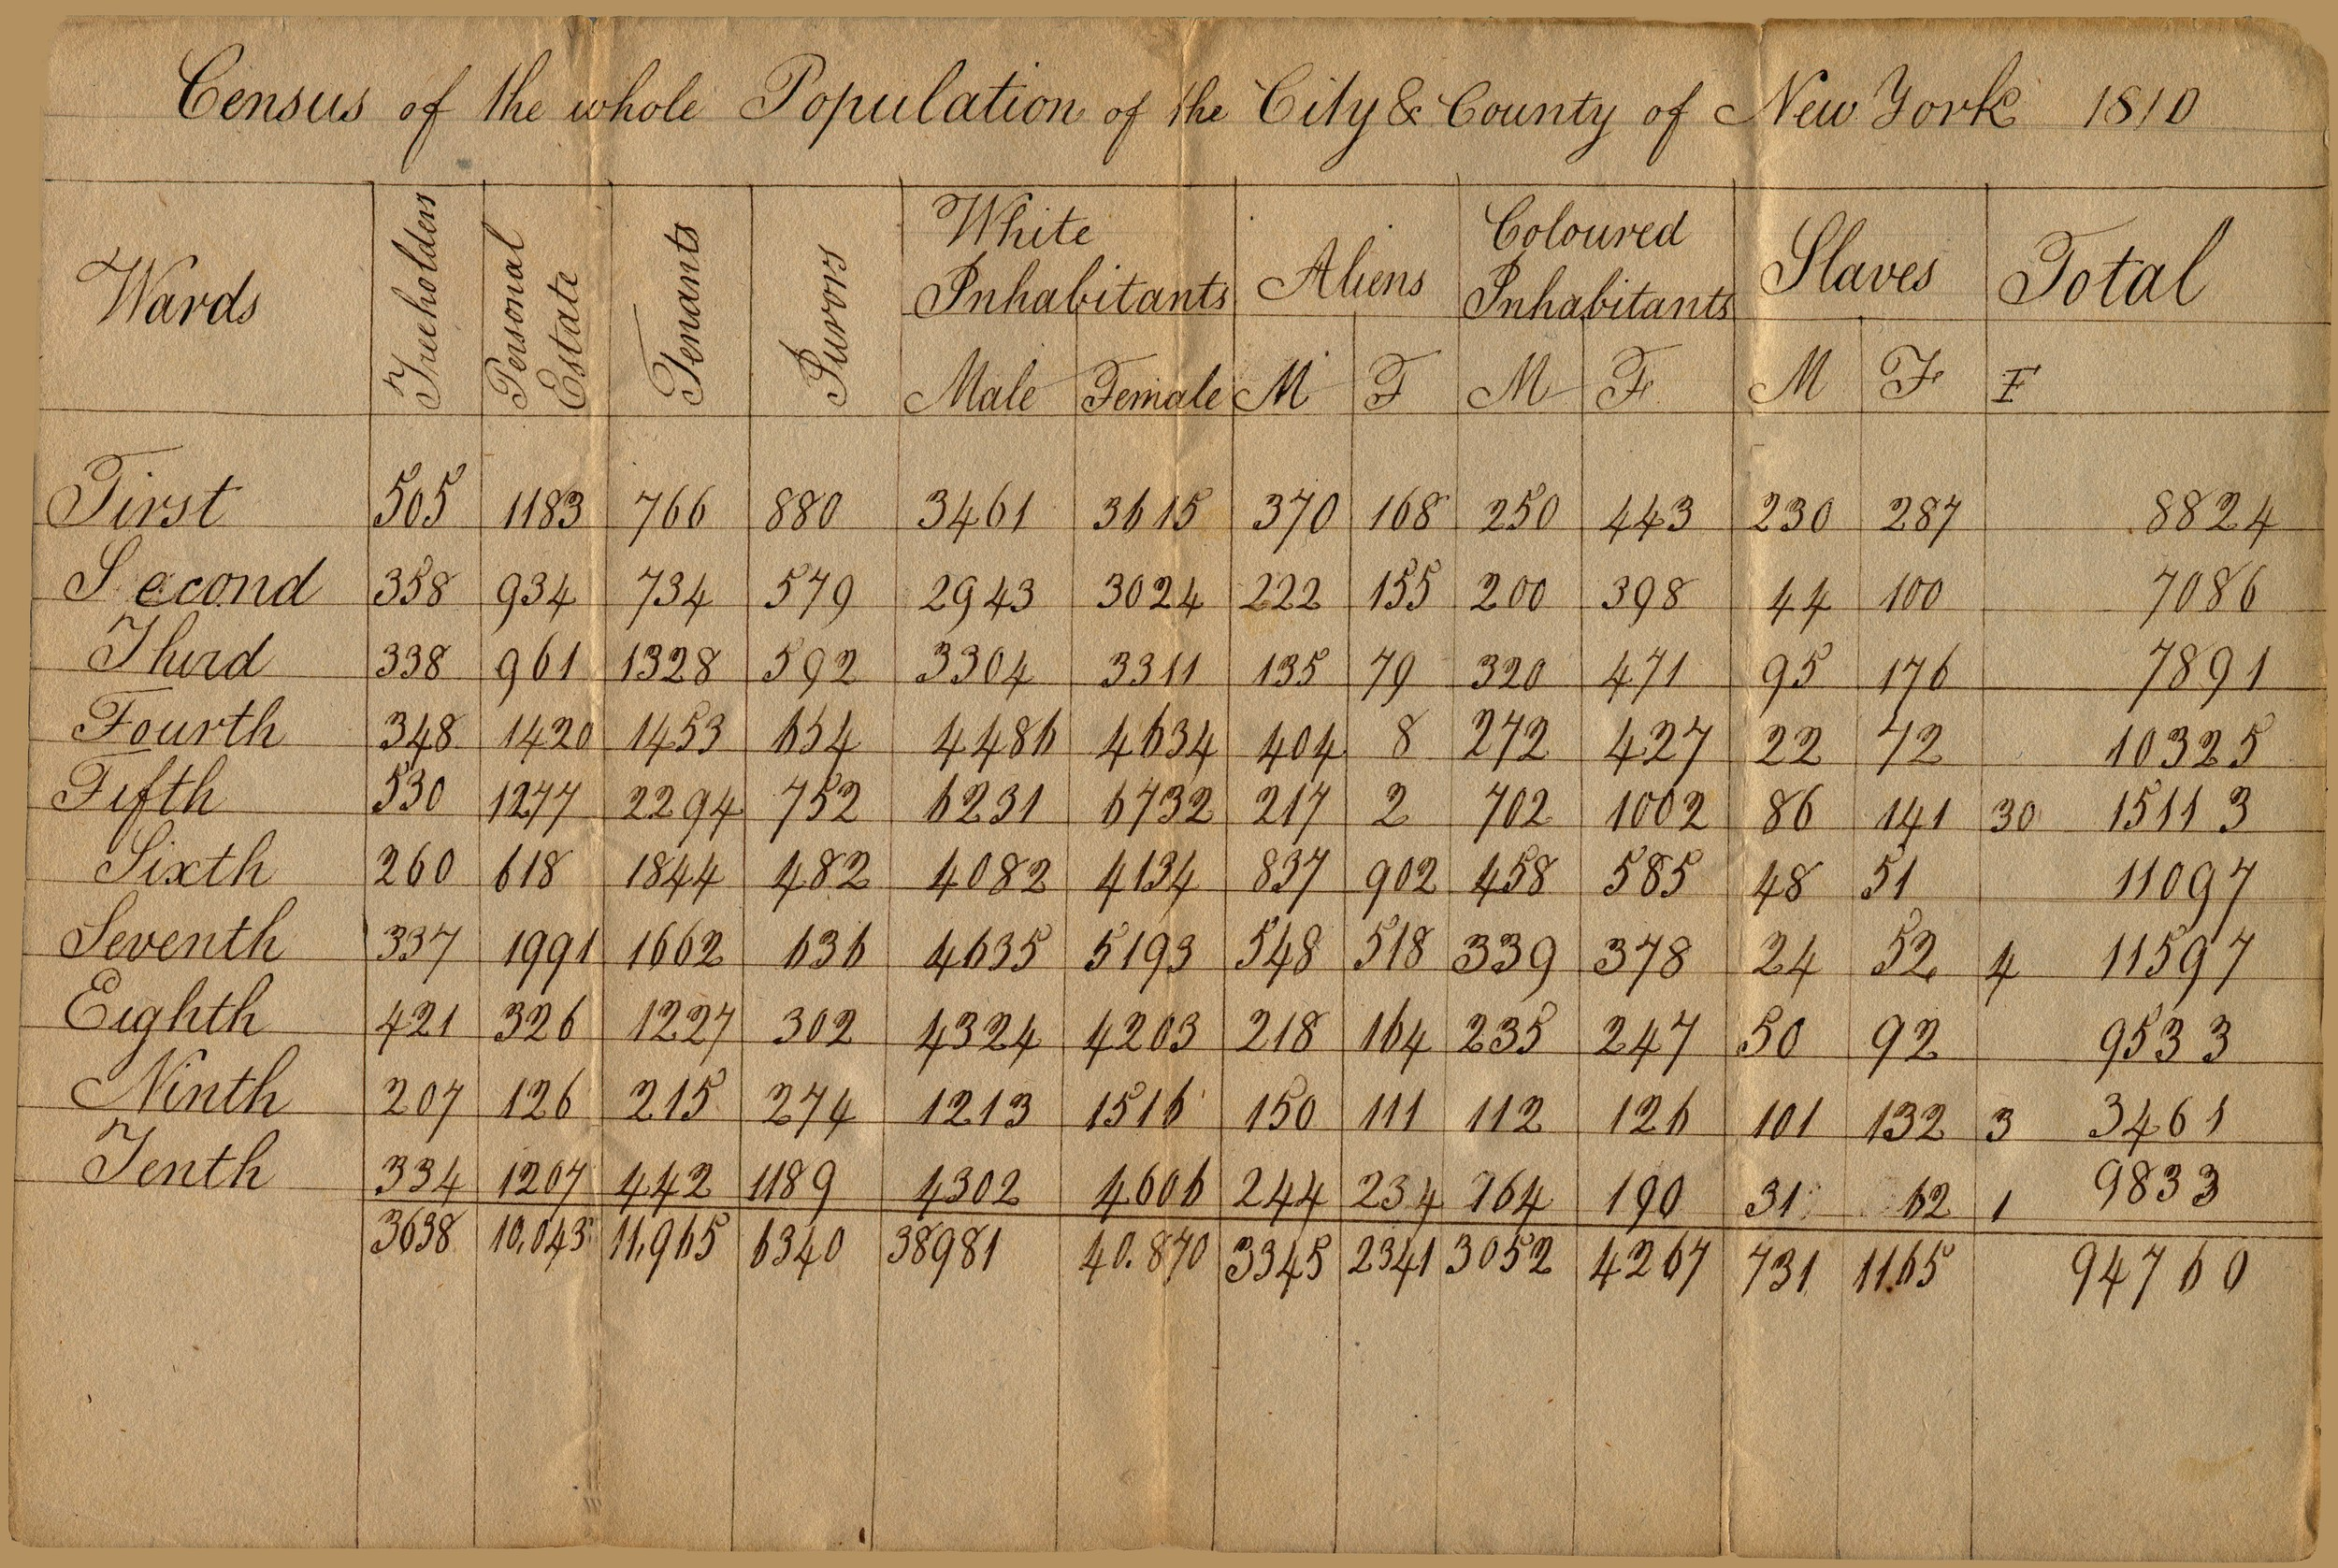 Census of the population of the City and County of New York for the year 1810.